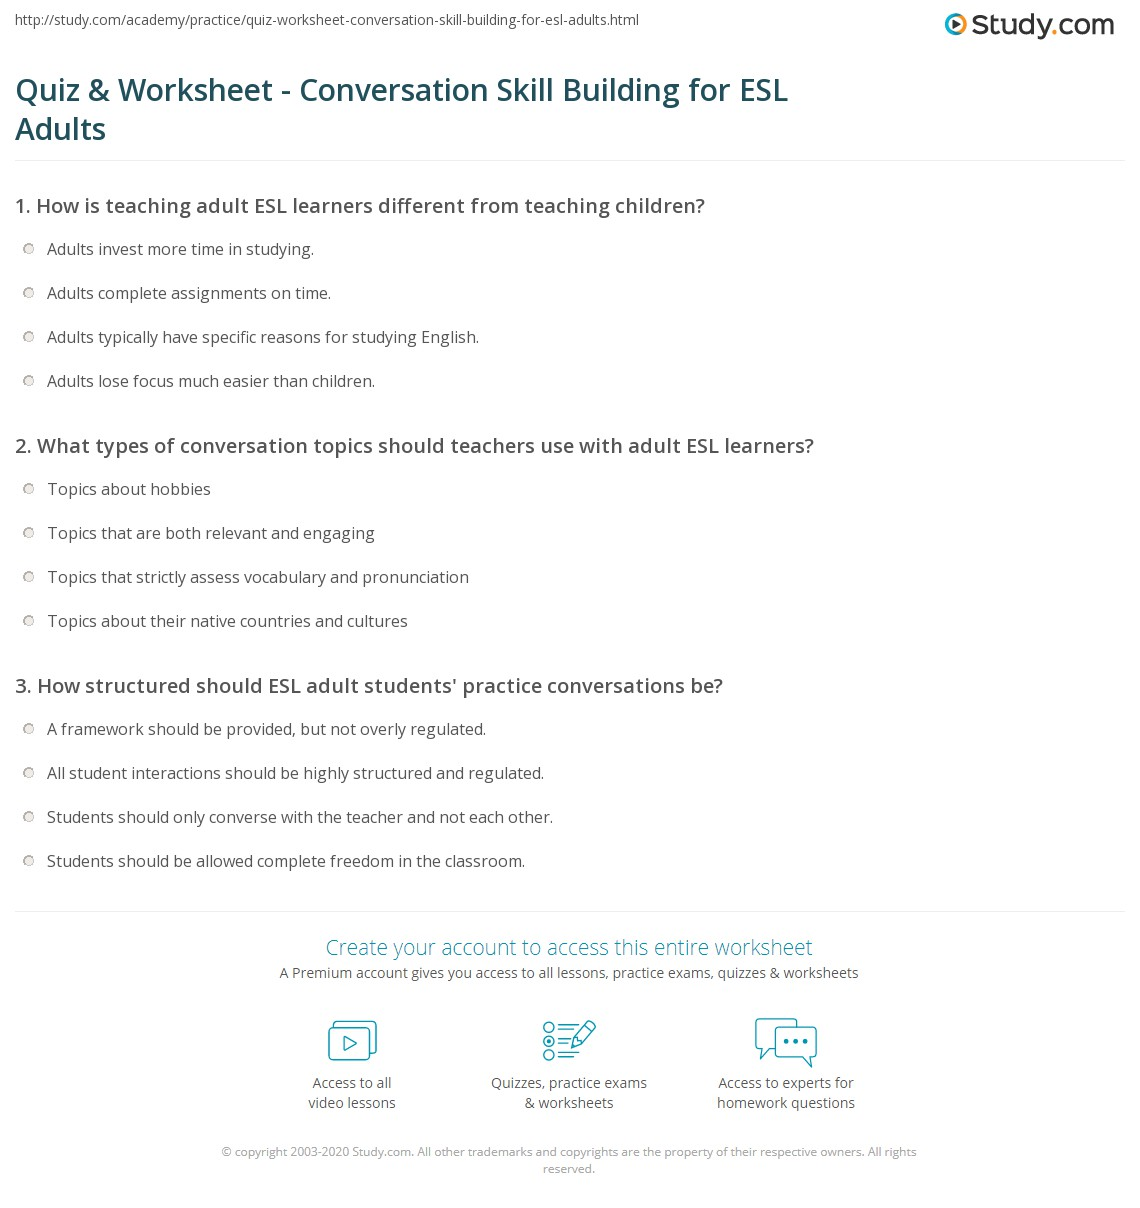 Worksheets Esl Conversation Worksheets quiz worksheet conversation skill building for esl adults print teaching skills to worksheet